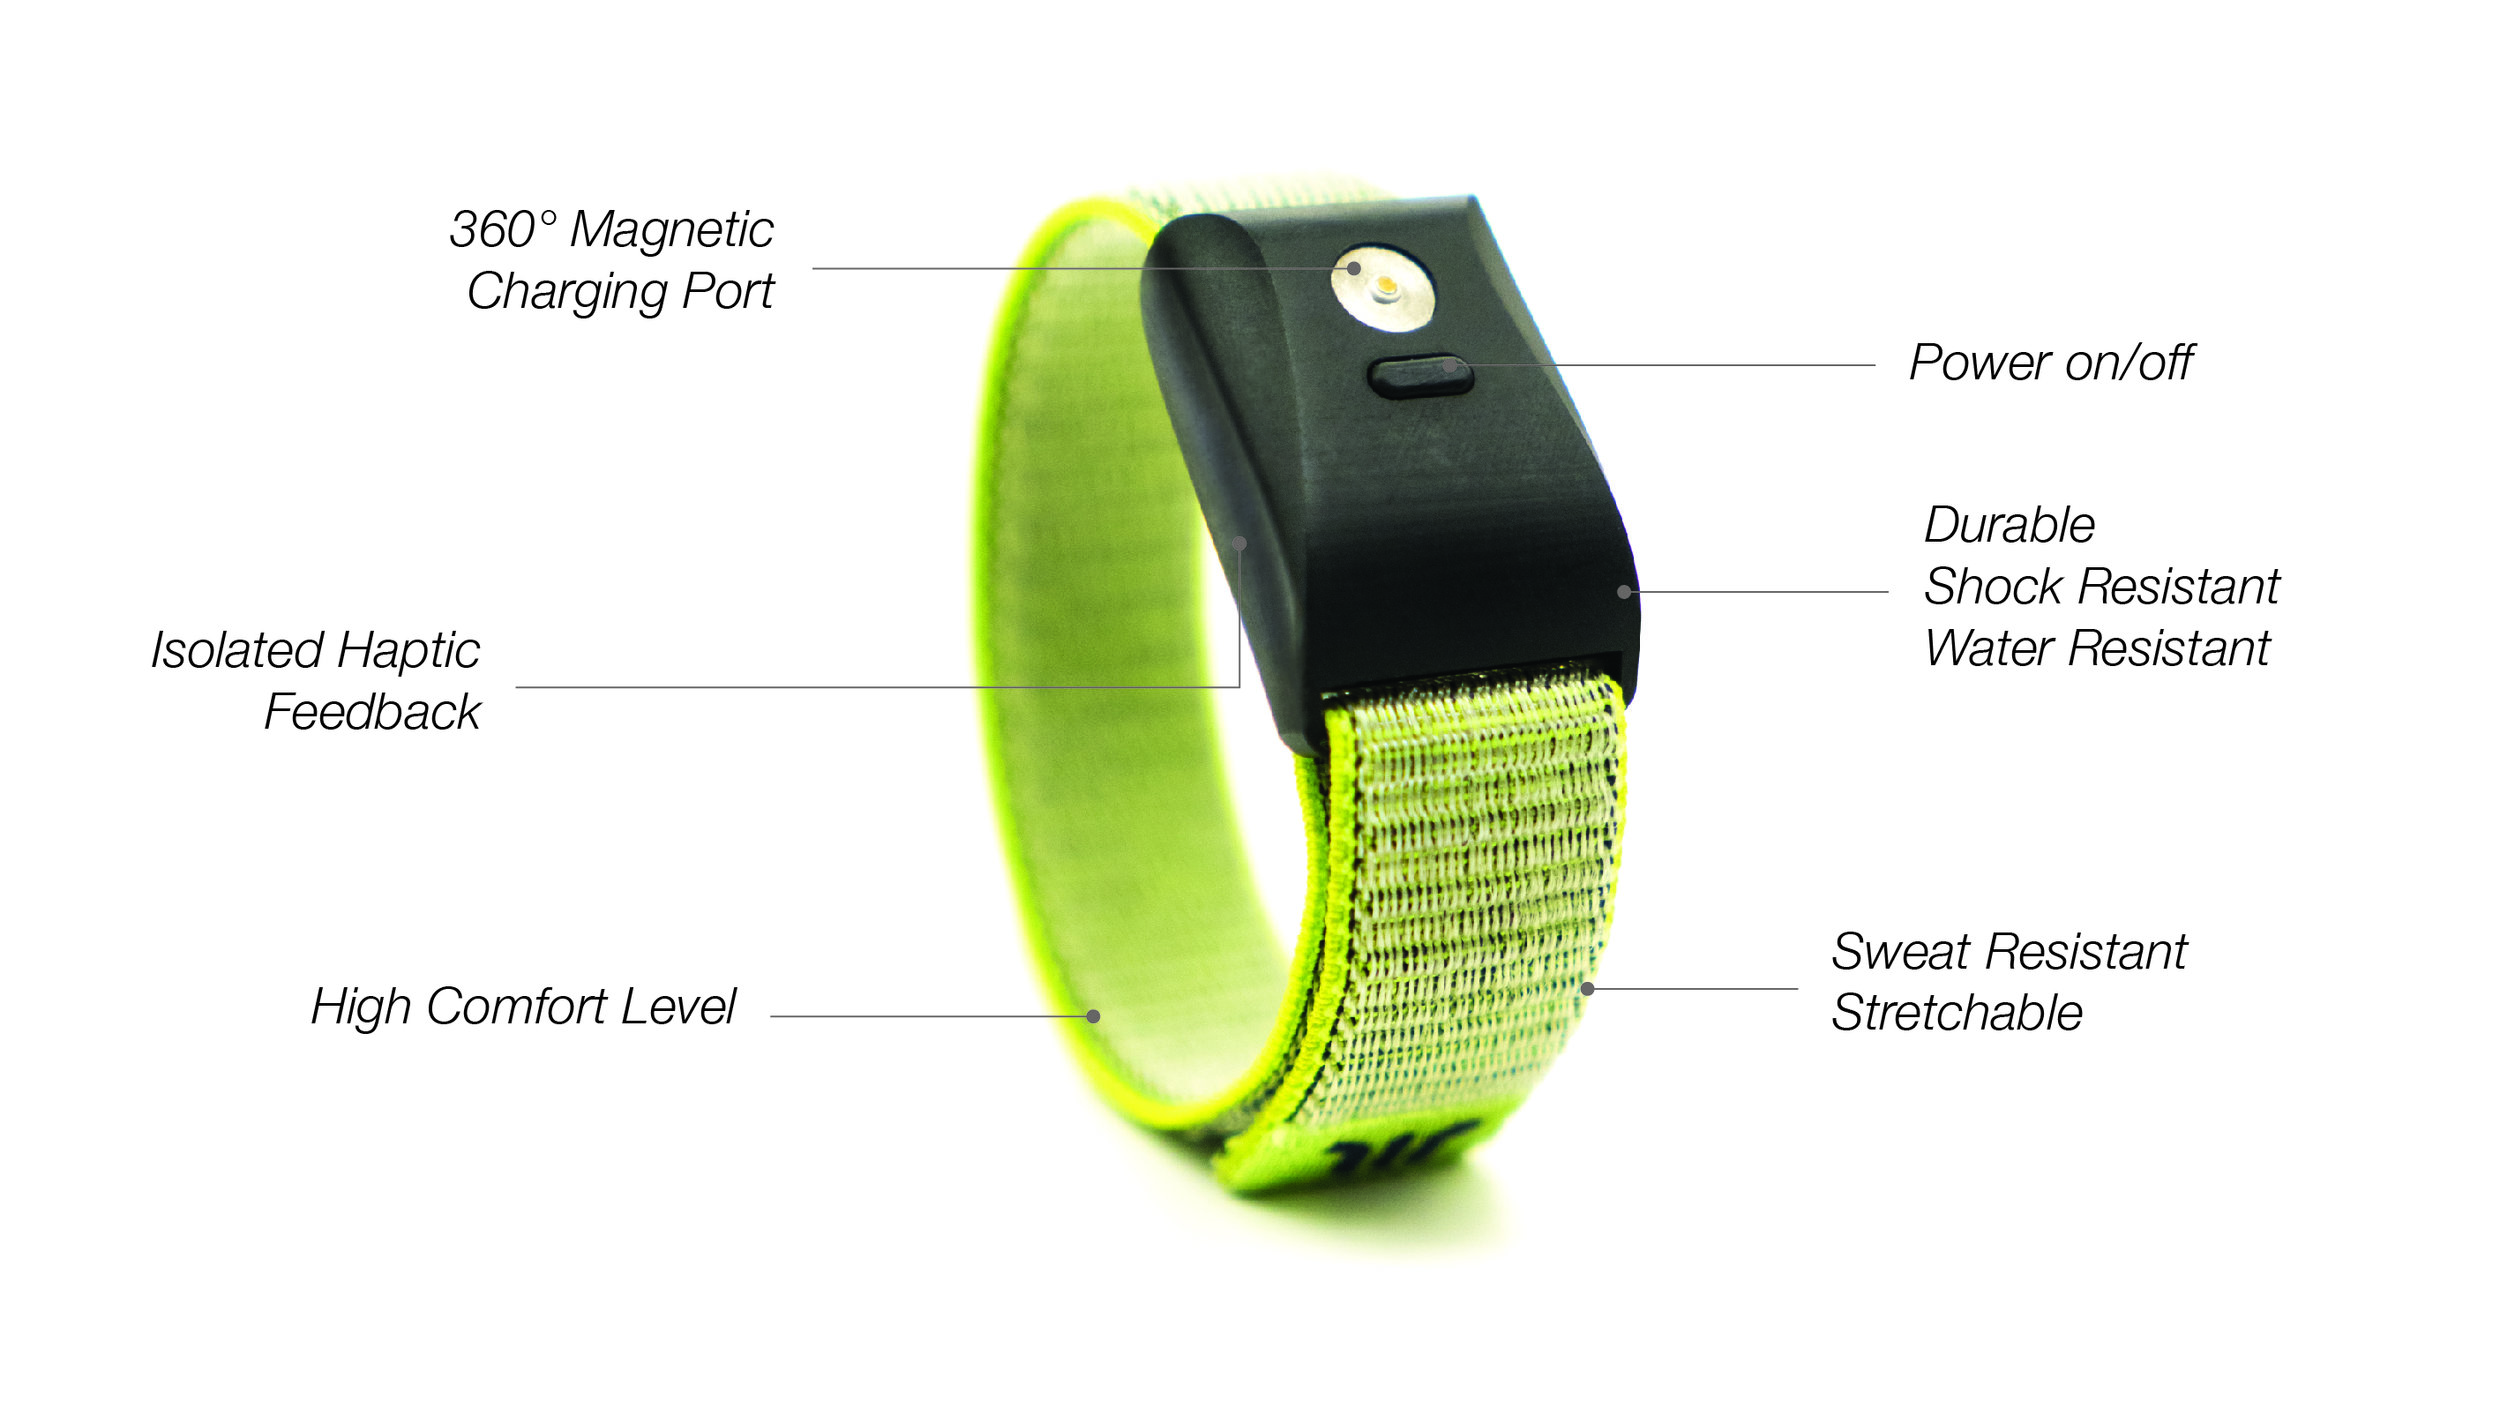 Wayband labelled with its features: Isolated Haptic Feedback, 360 Magnetic CHarging Port, Durable, Shock Resistant, Water Resistant with Stretchable band that is sweat resistant